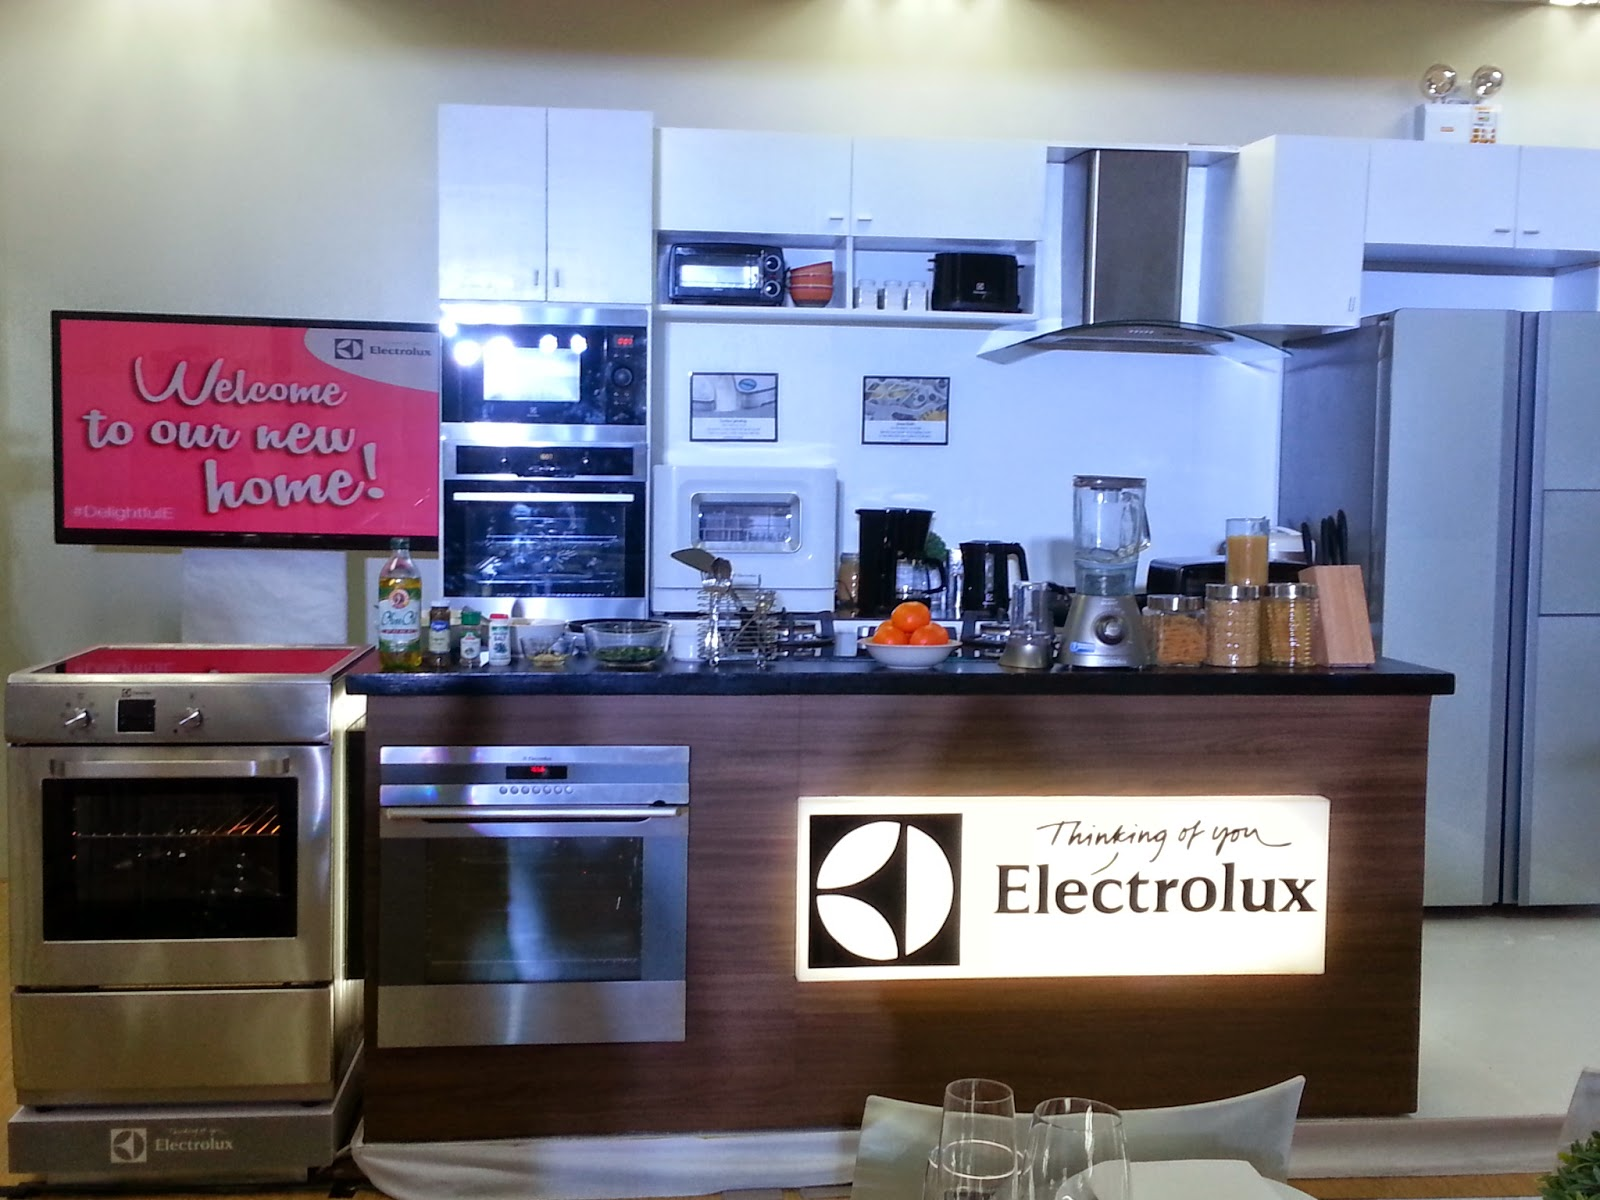 electrolux archives - the philippine beat